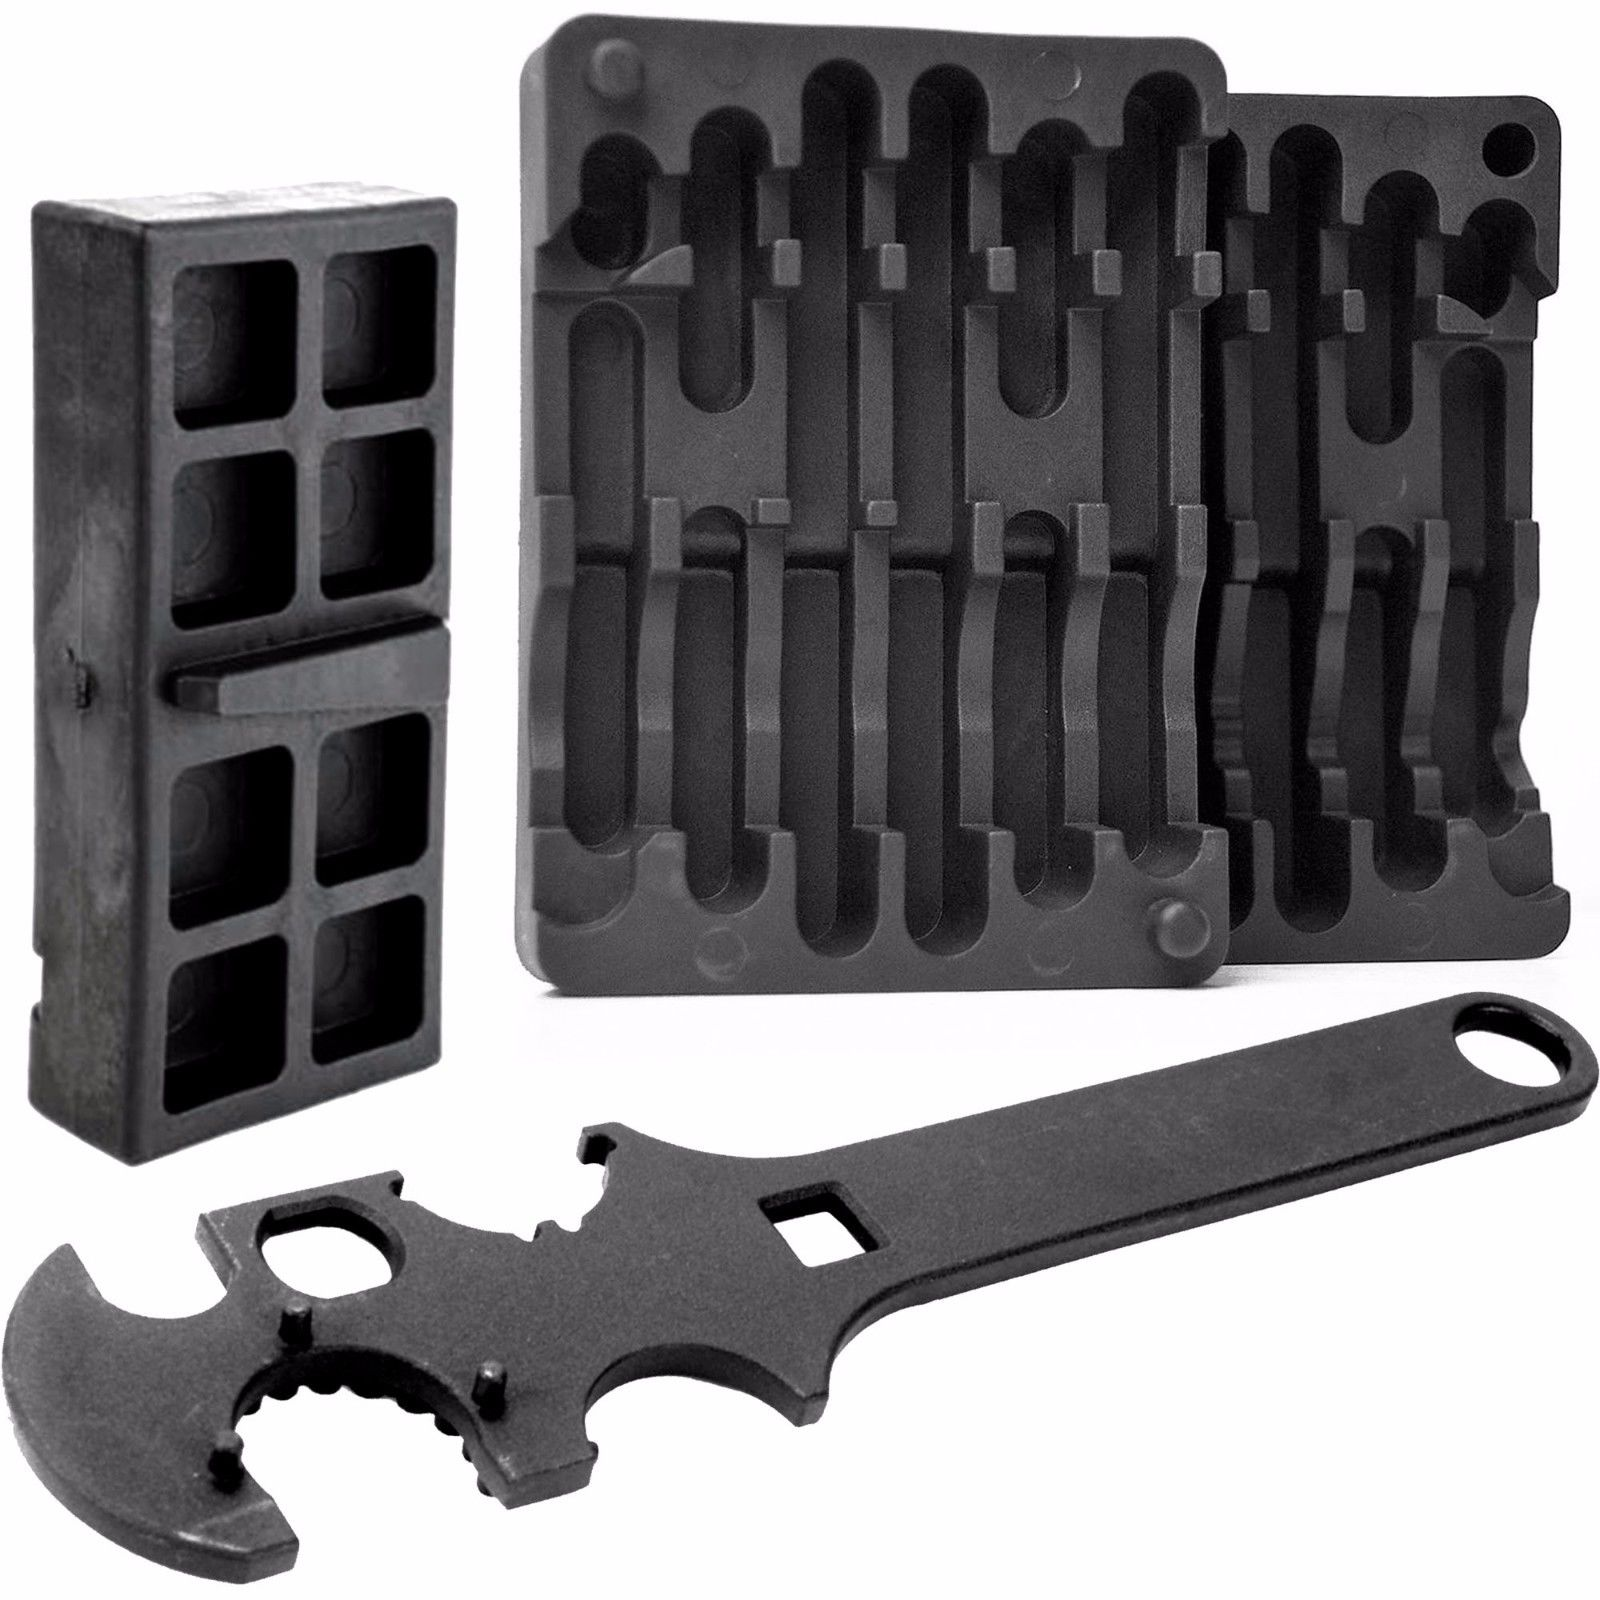 LIVABIT 3PC Combo Armorer's AR Multi Tool Upper Lower Vise Block Wrench